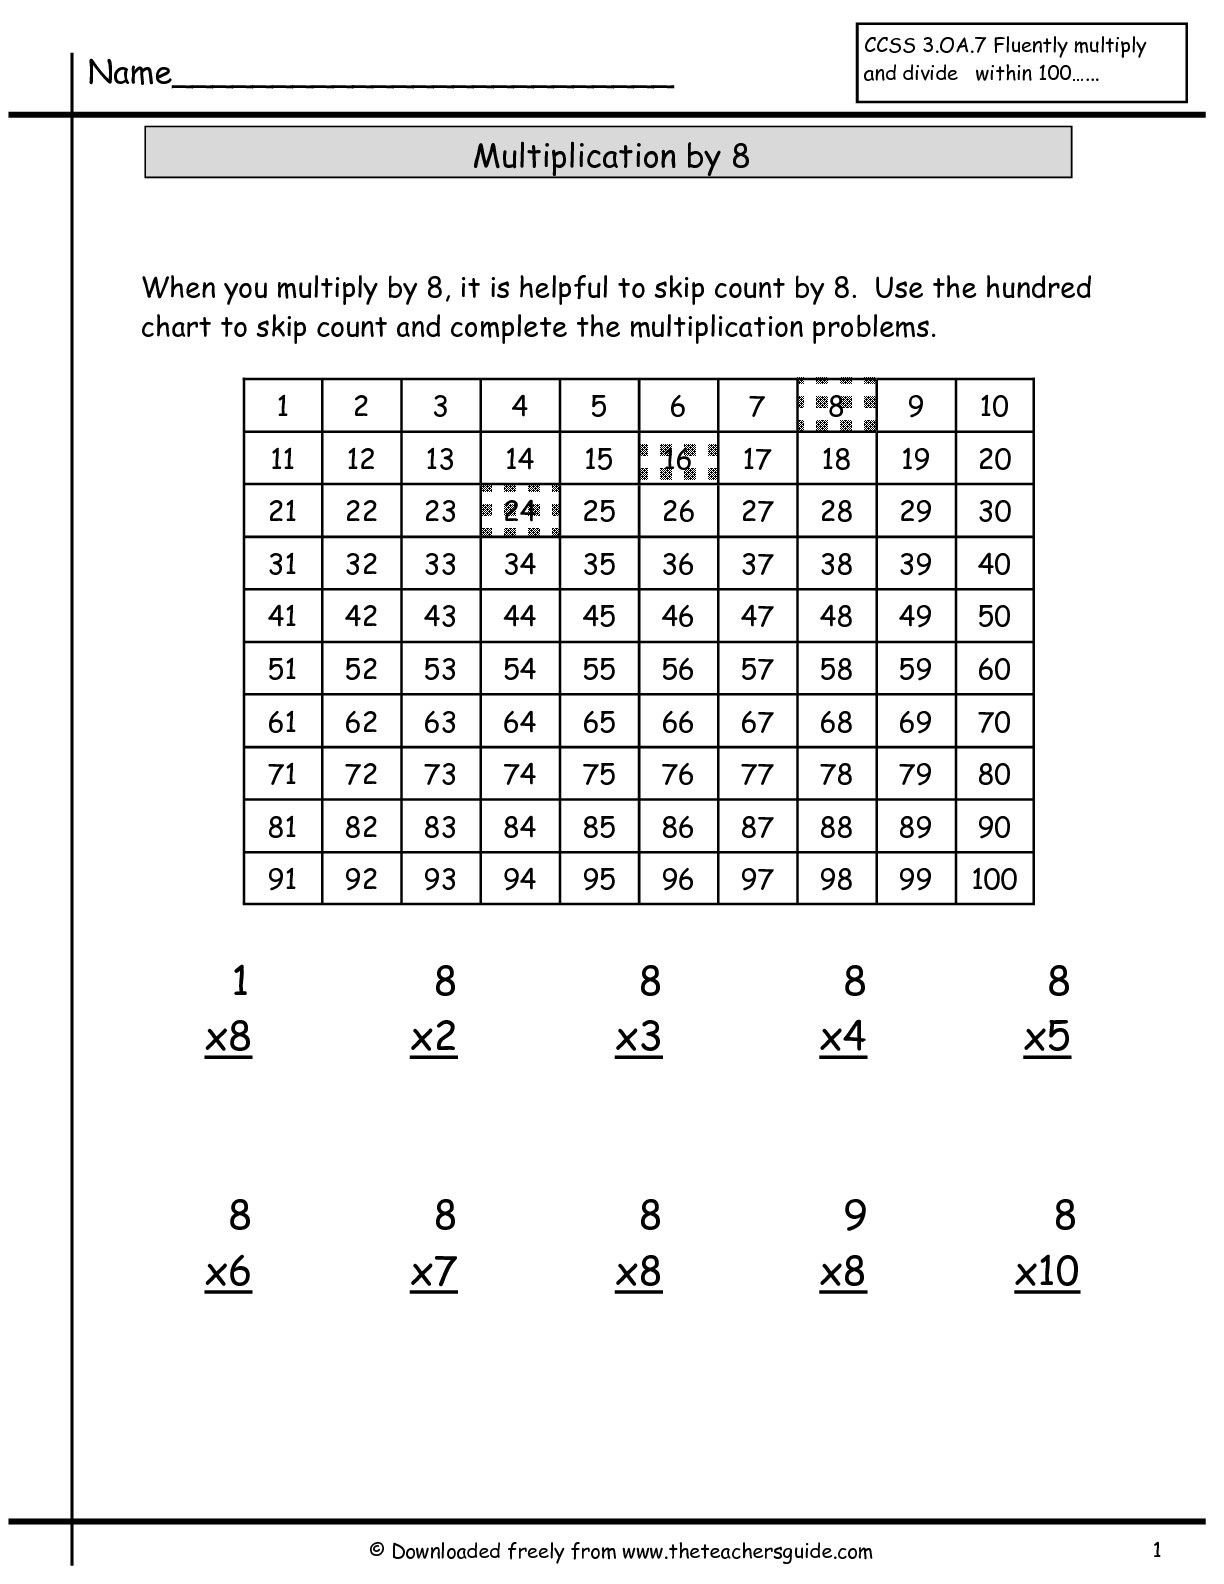 Multiplication Facts Worksheet Generator Multiplication Facts Worksheets From the Teacher S Guide